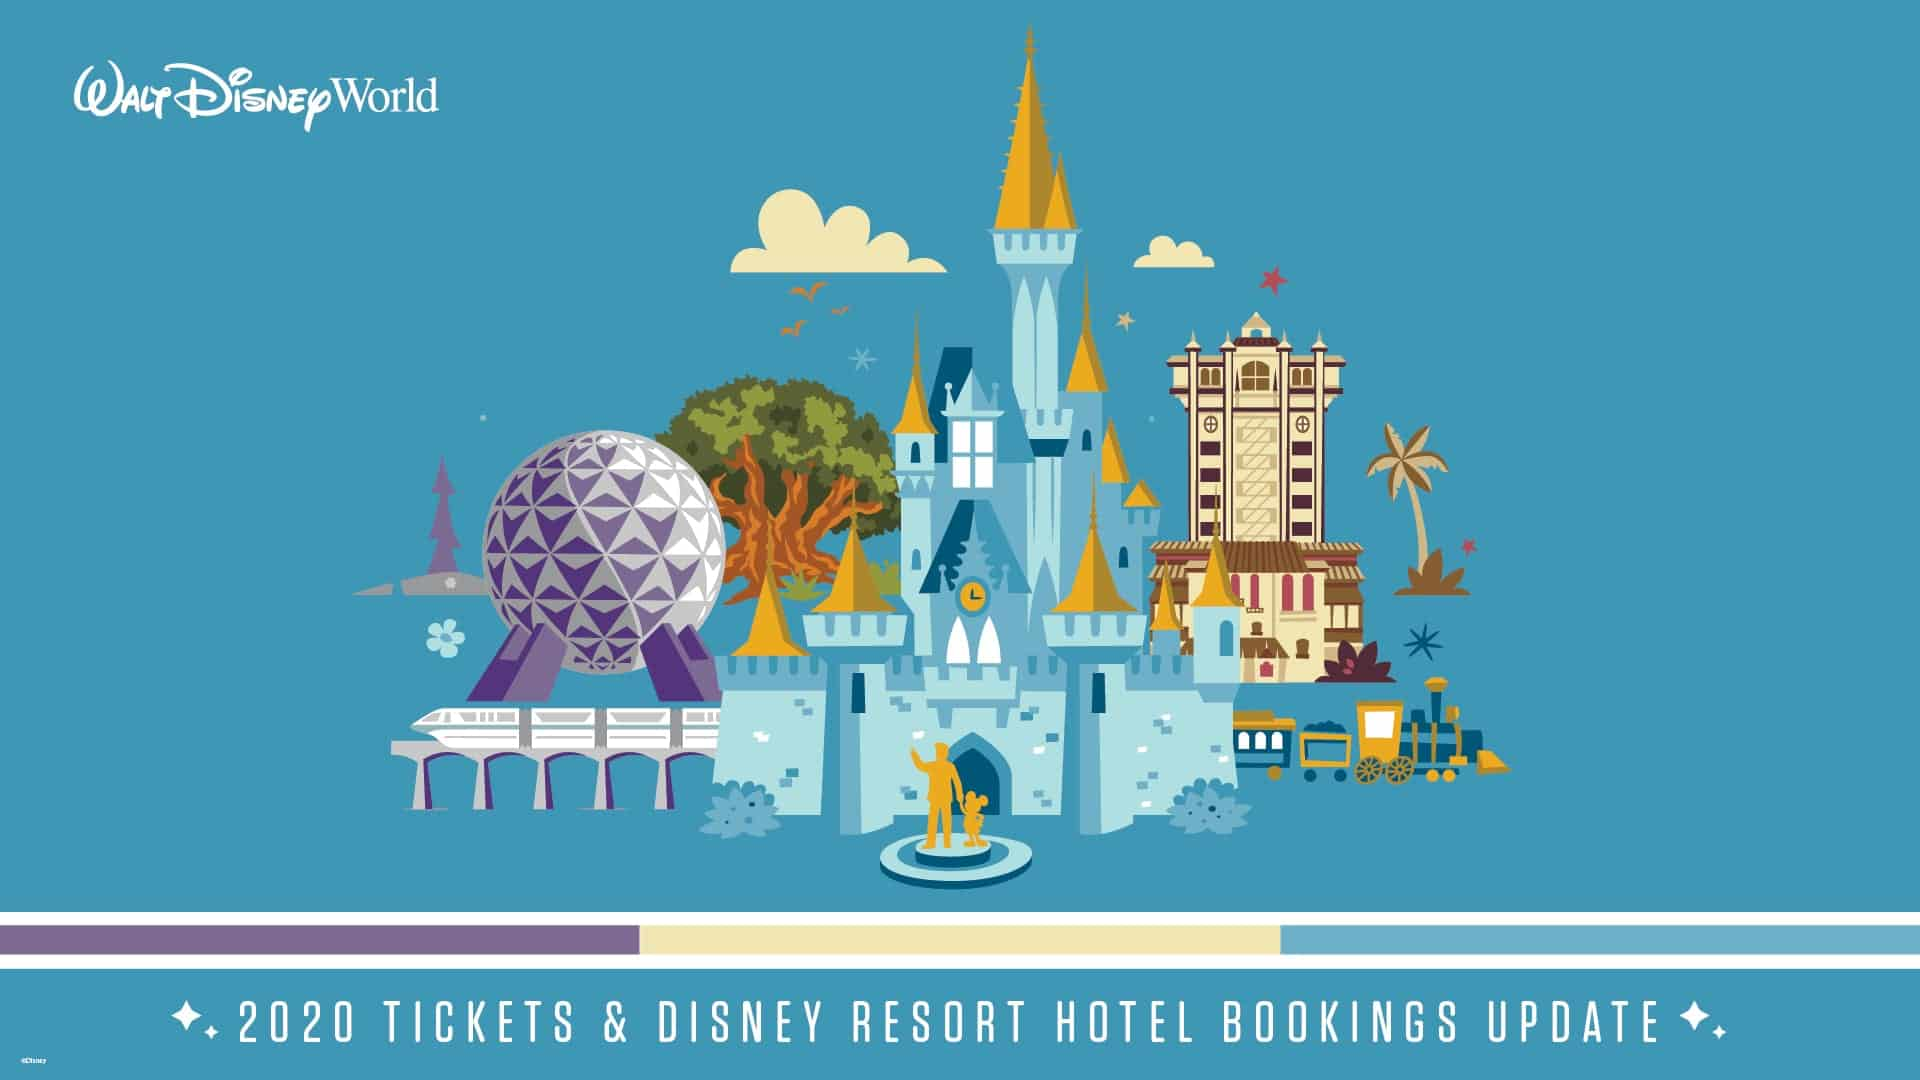 2020 Disney World Tickets And Hotels Now Available